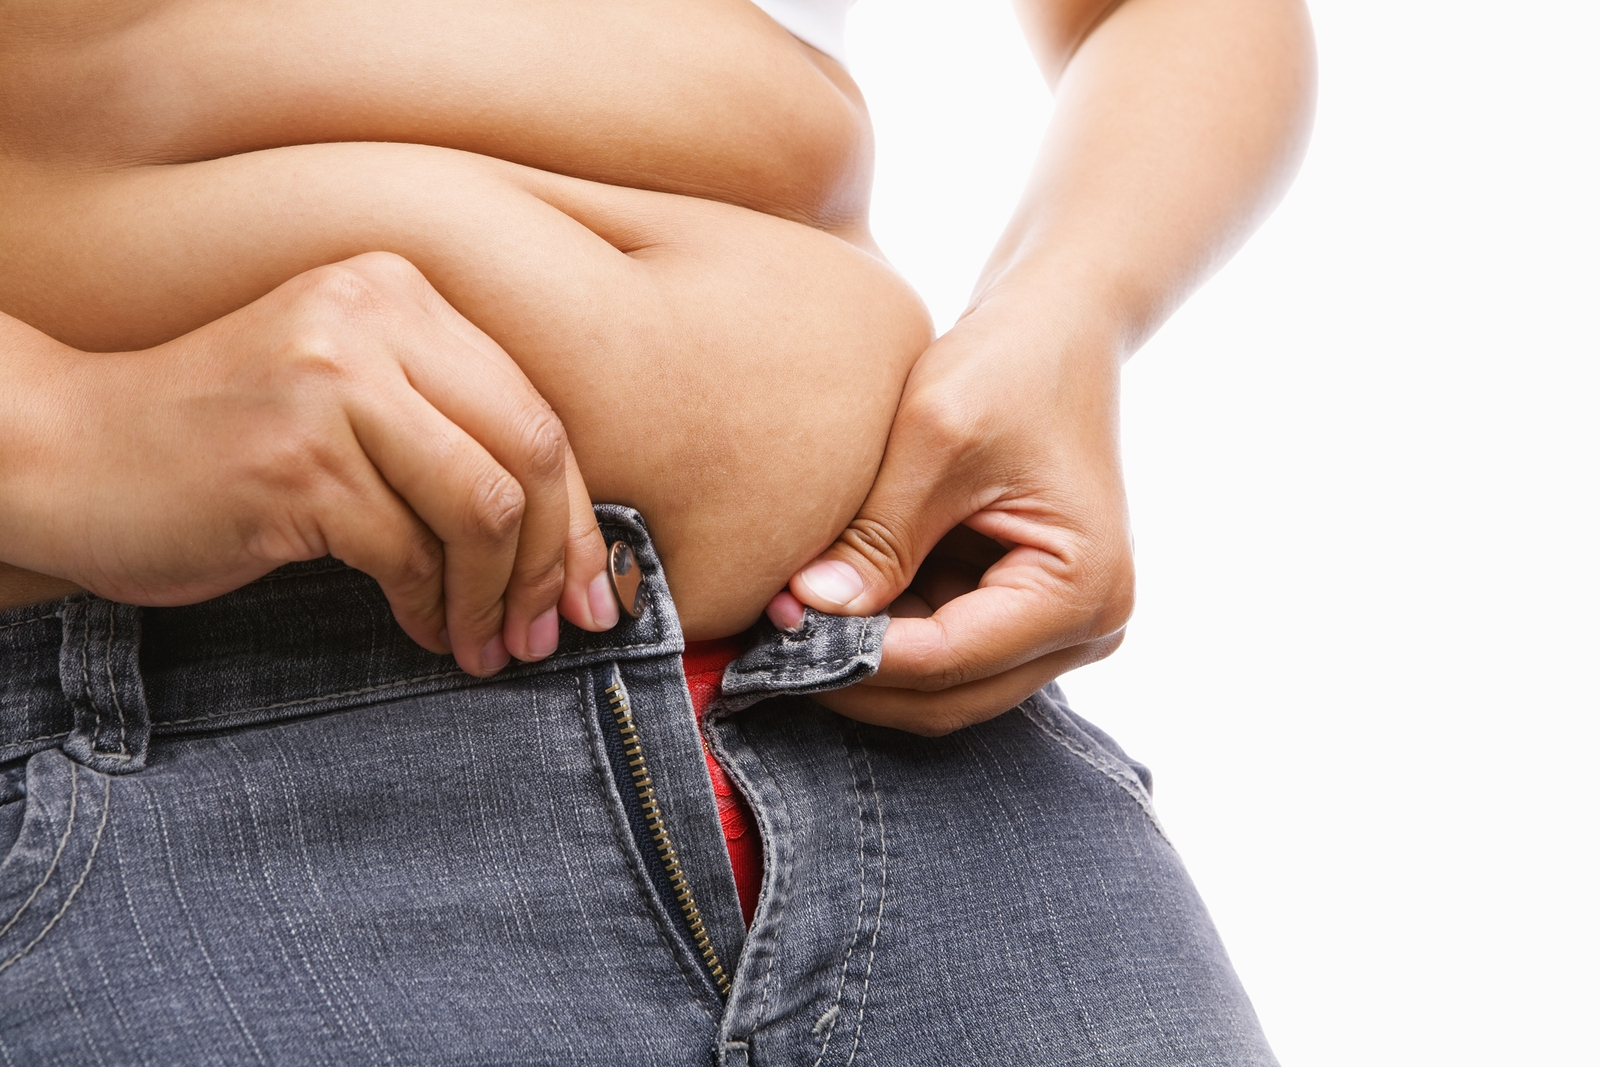 Woman trying hand to zipper her jeans a concept for obesity issue